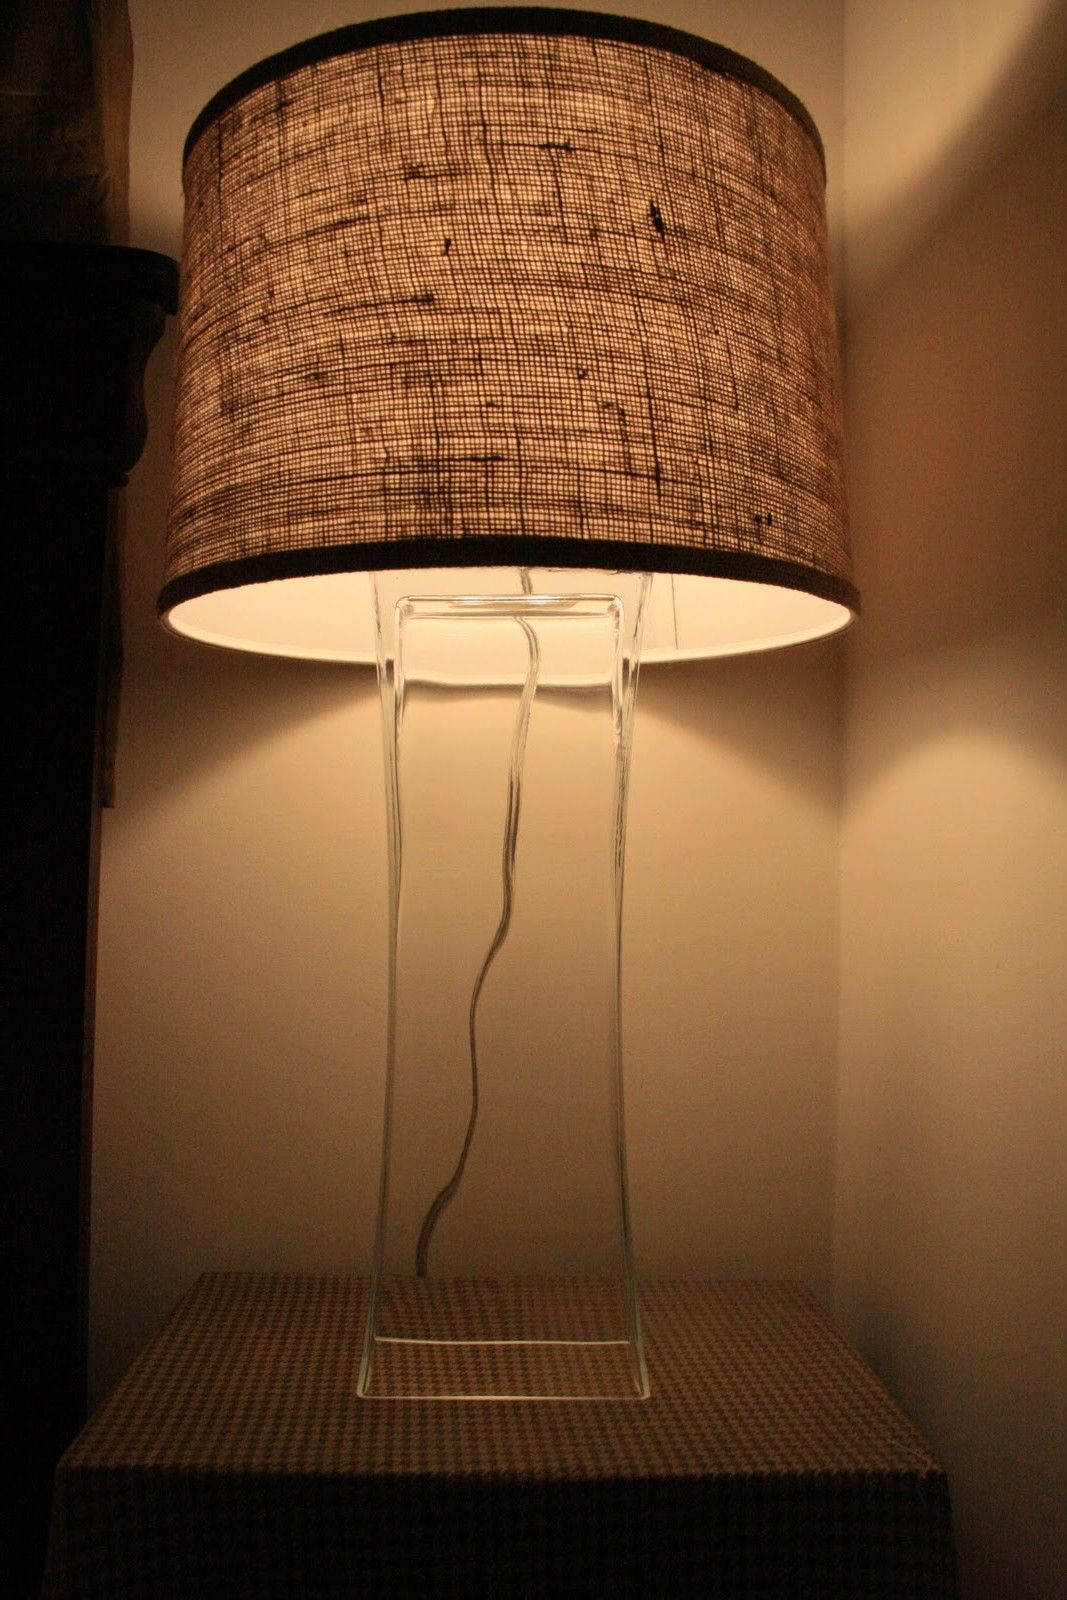 Drum lamp shades walmart interesting lamps pinterest lowes drum lamp shades walmart aloadofball Image collections